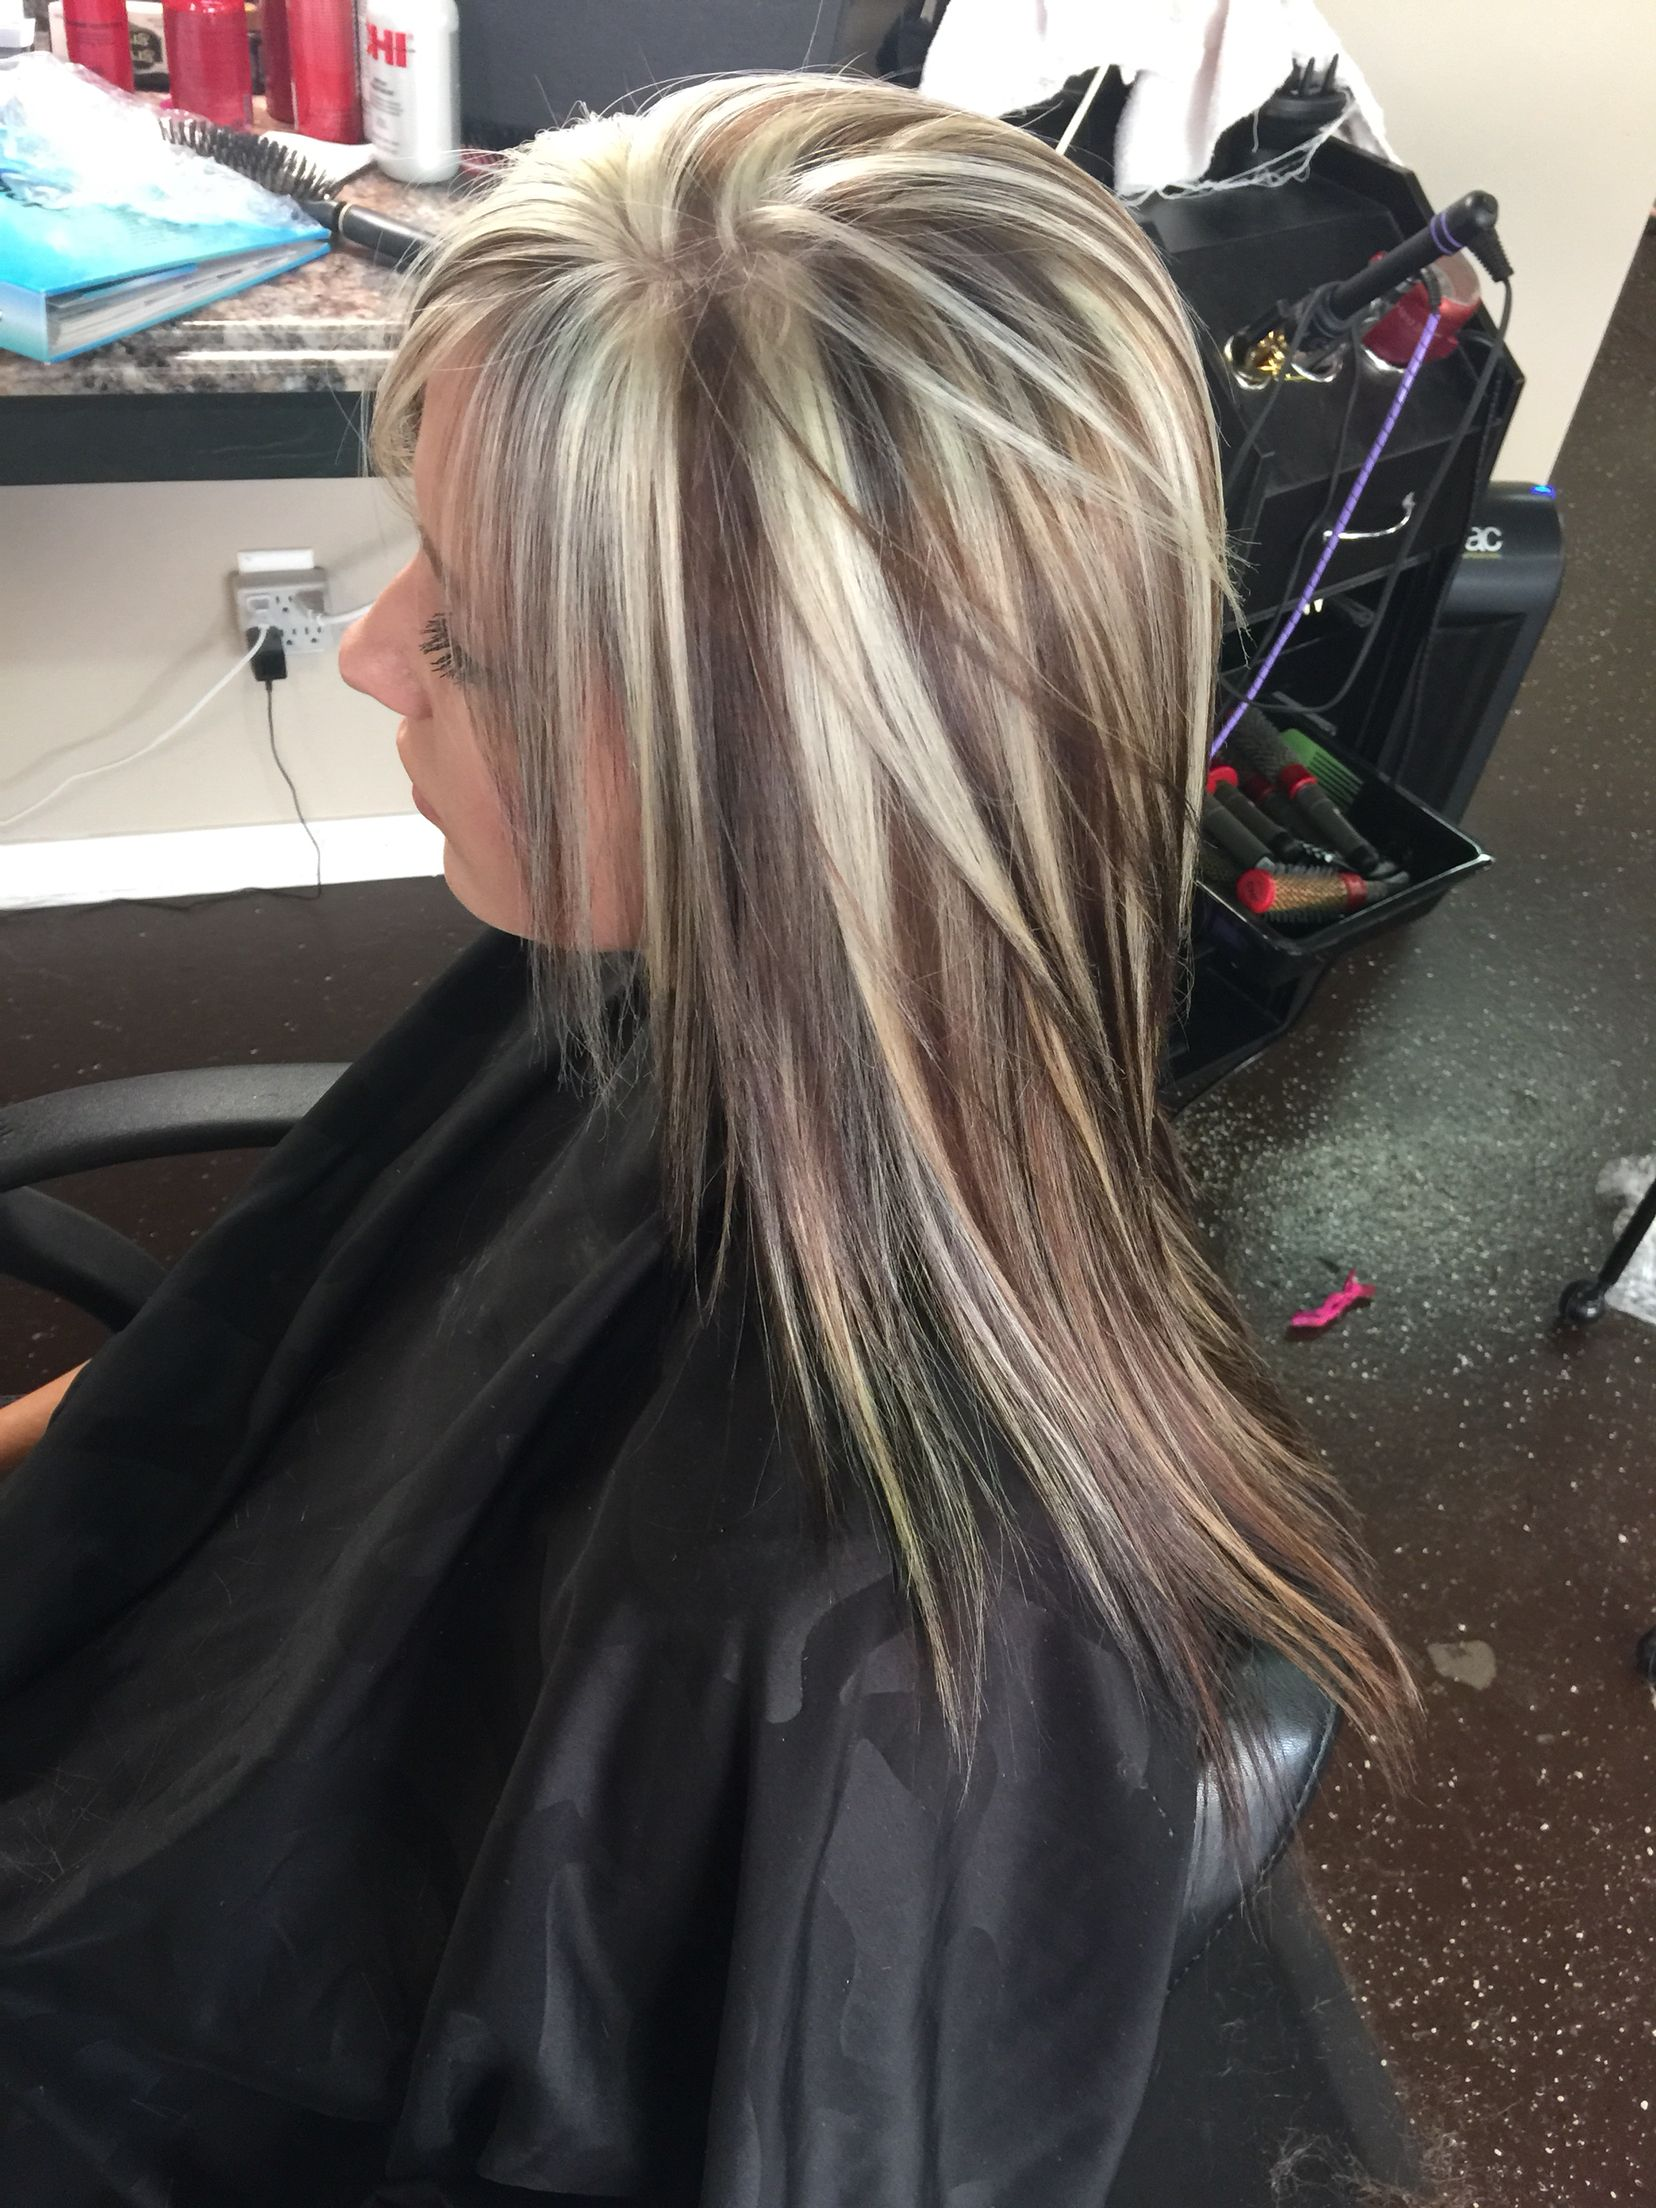 Chunky Hilights And Lowlights With A Layered Cut Hair